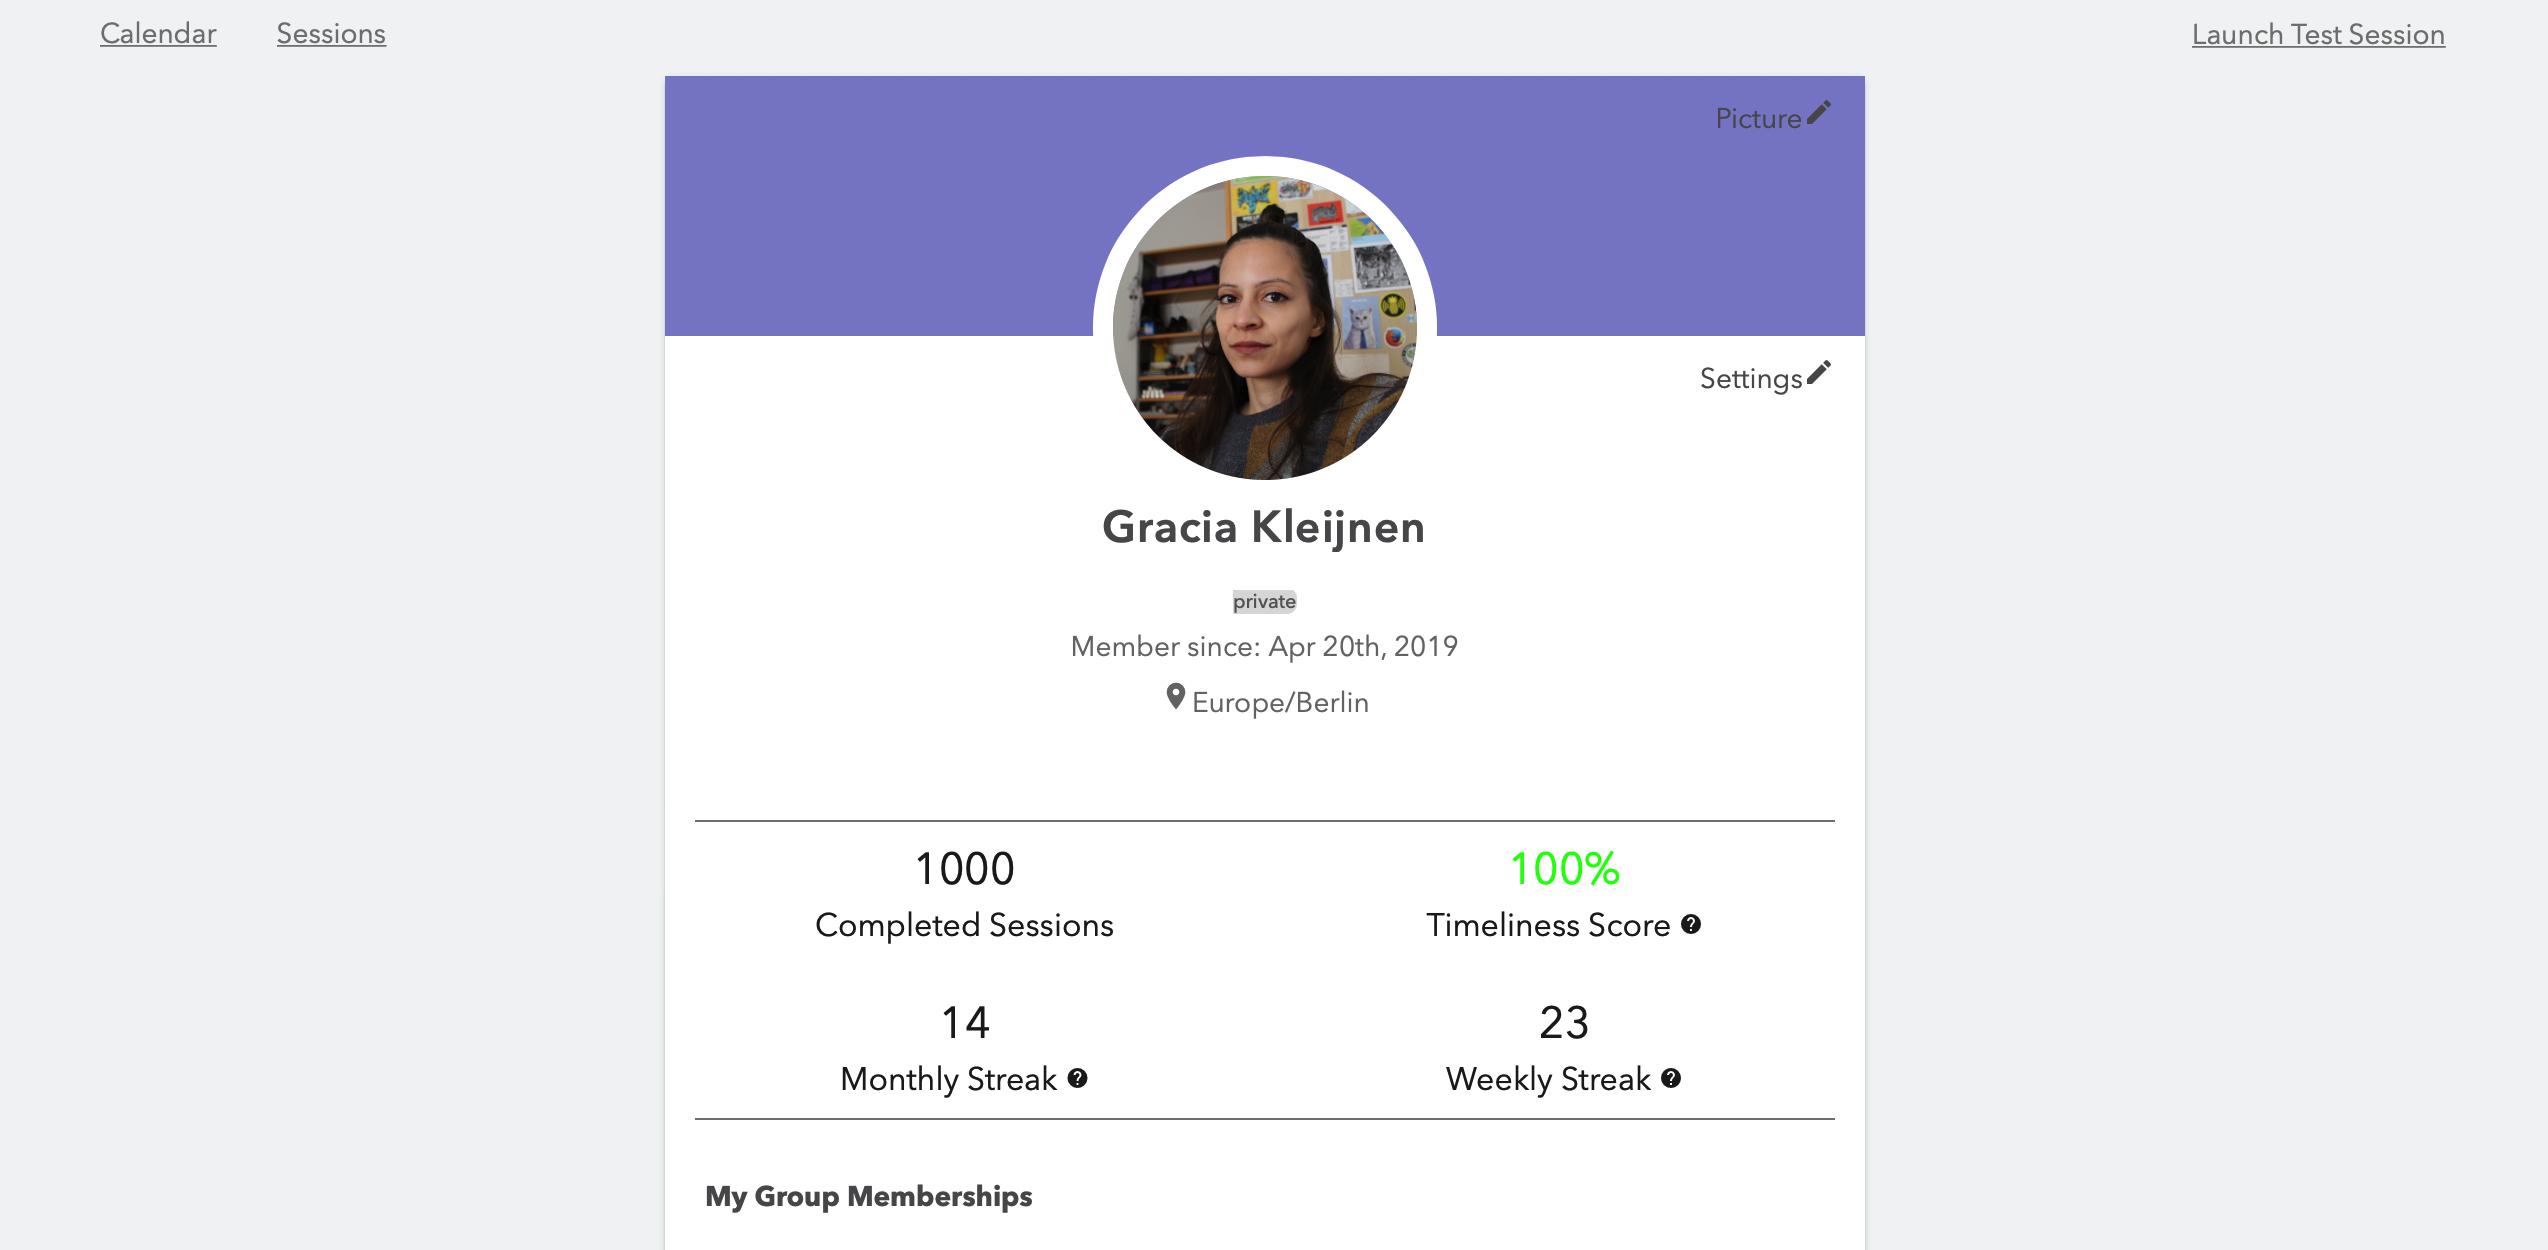 Focusmate profile showing pic & stats: 1K completed sessions, timeliness score: 100%, monthly streak: 14, weekly streak: 23.